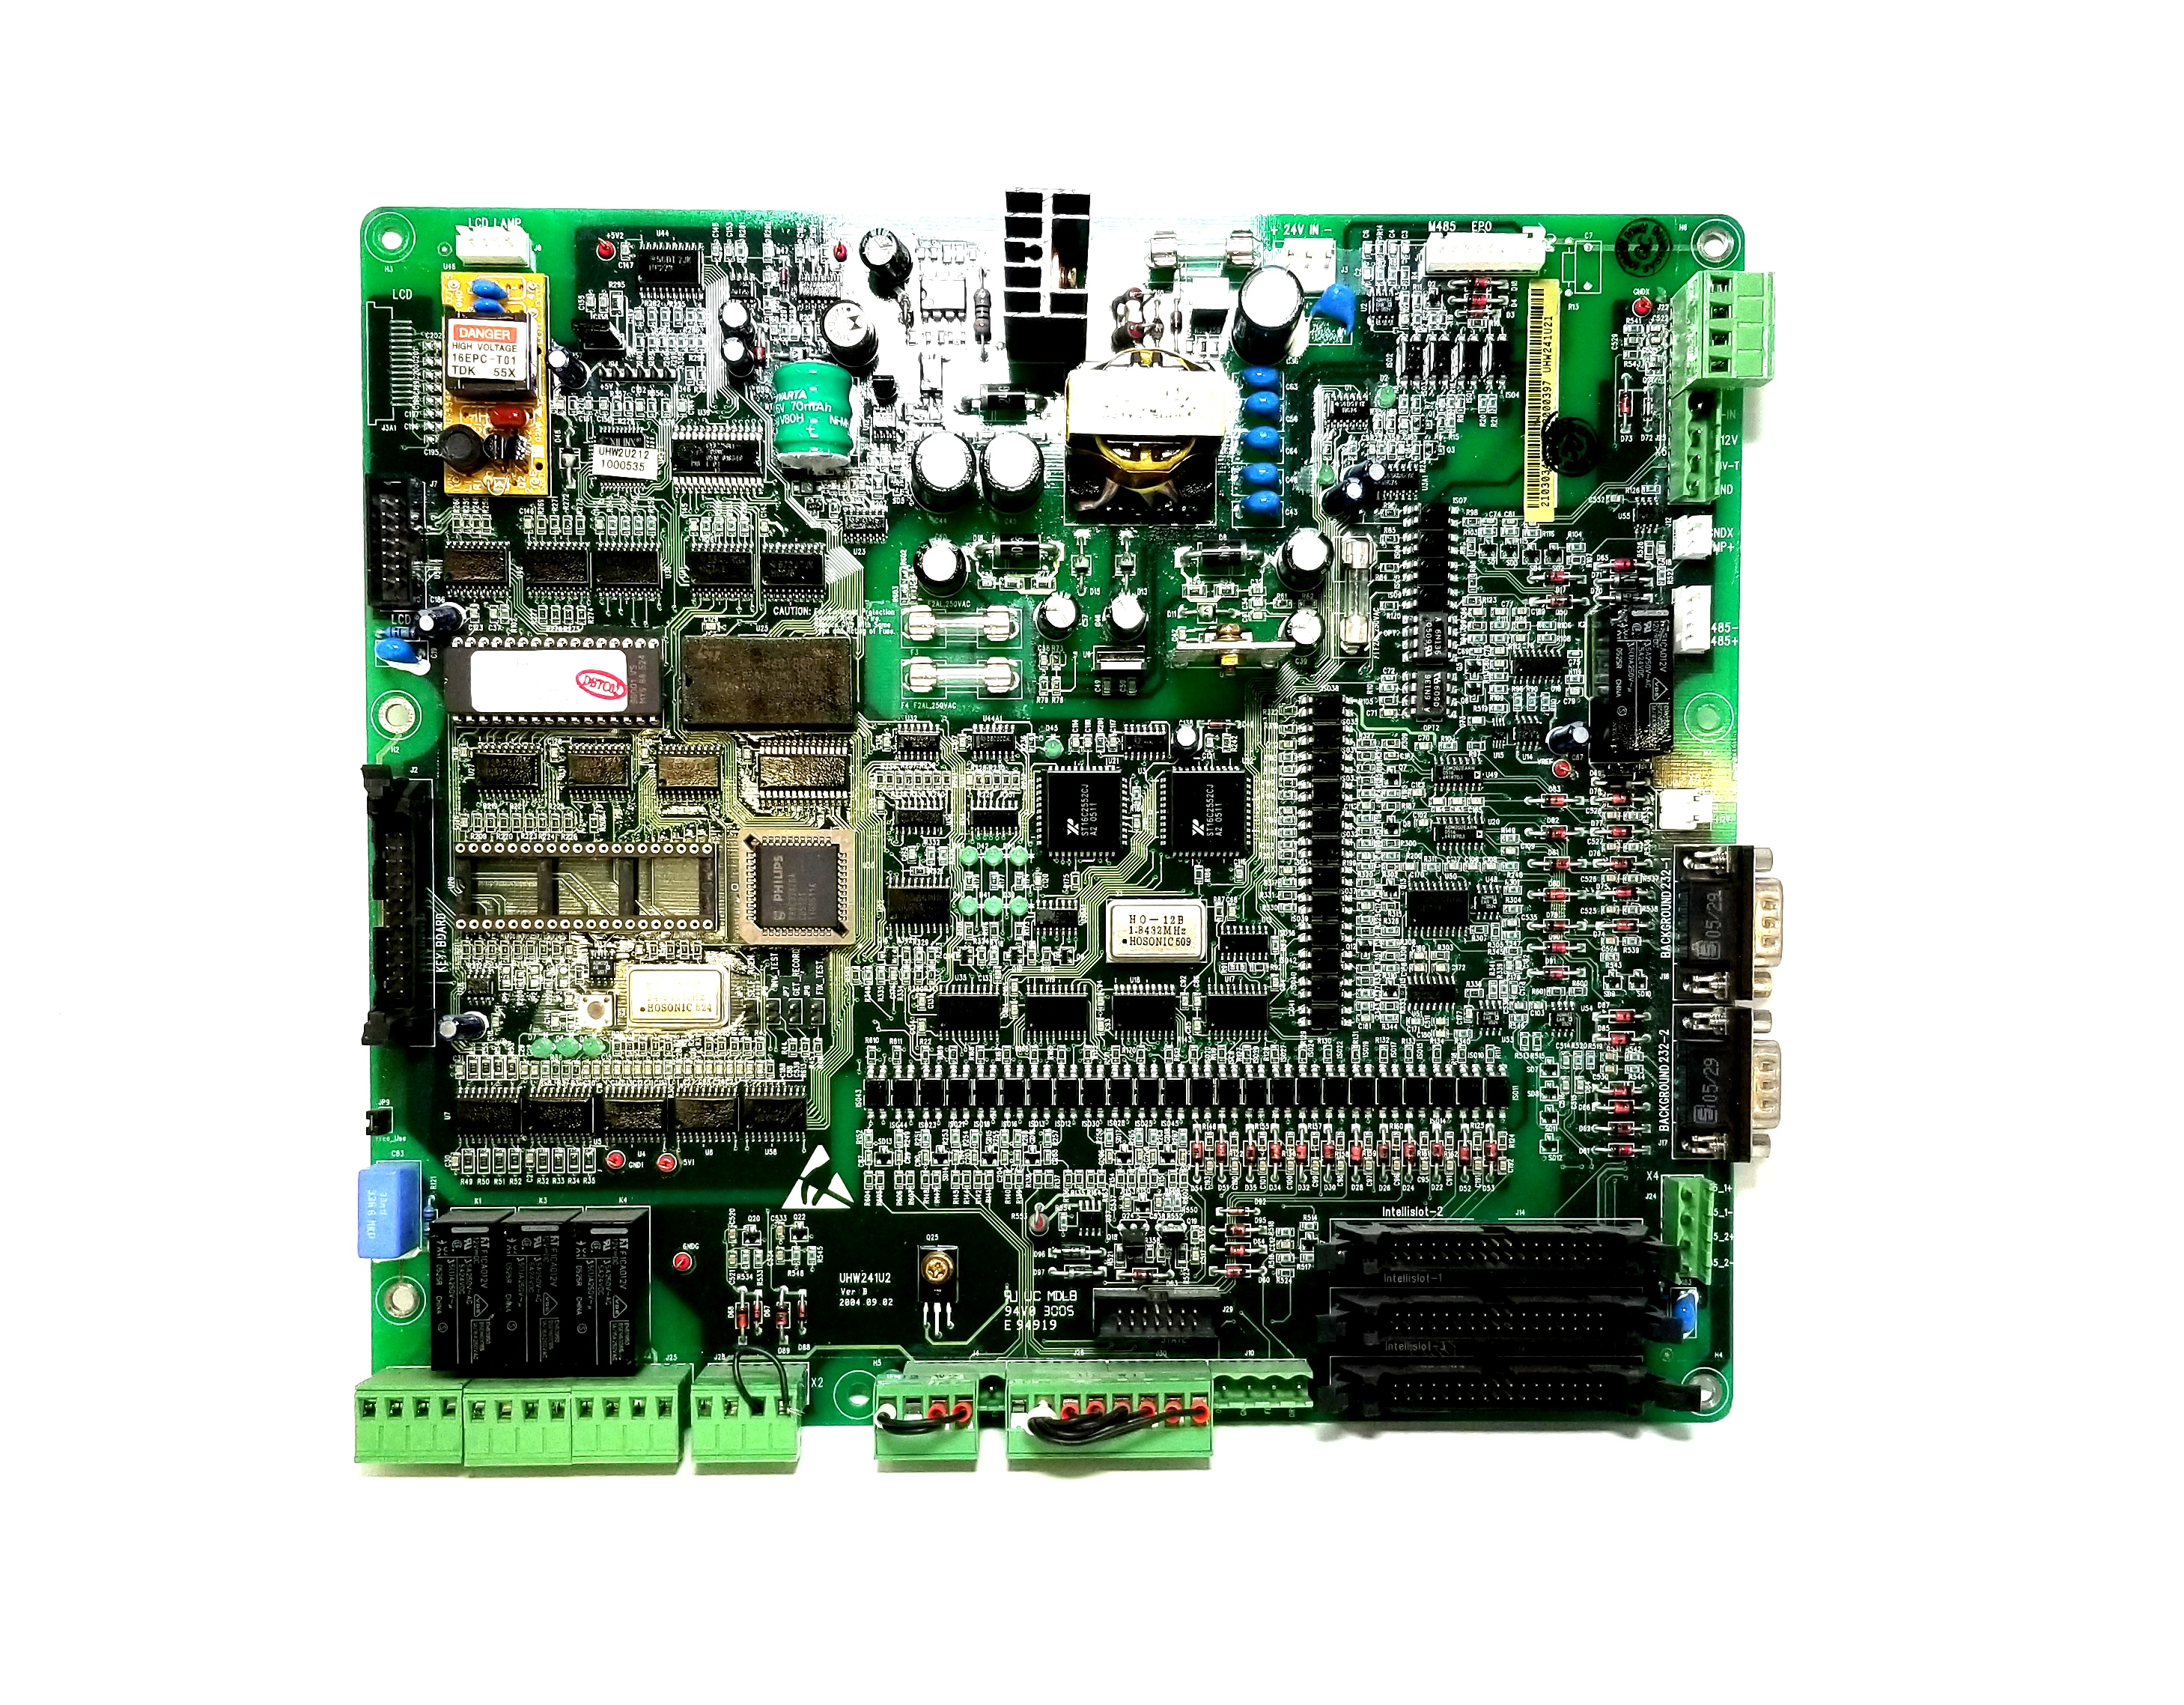 Liebert Uhw241a21 Pcb Circuit Board Tested Somerset Power Systems